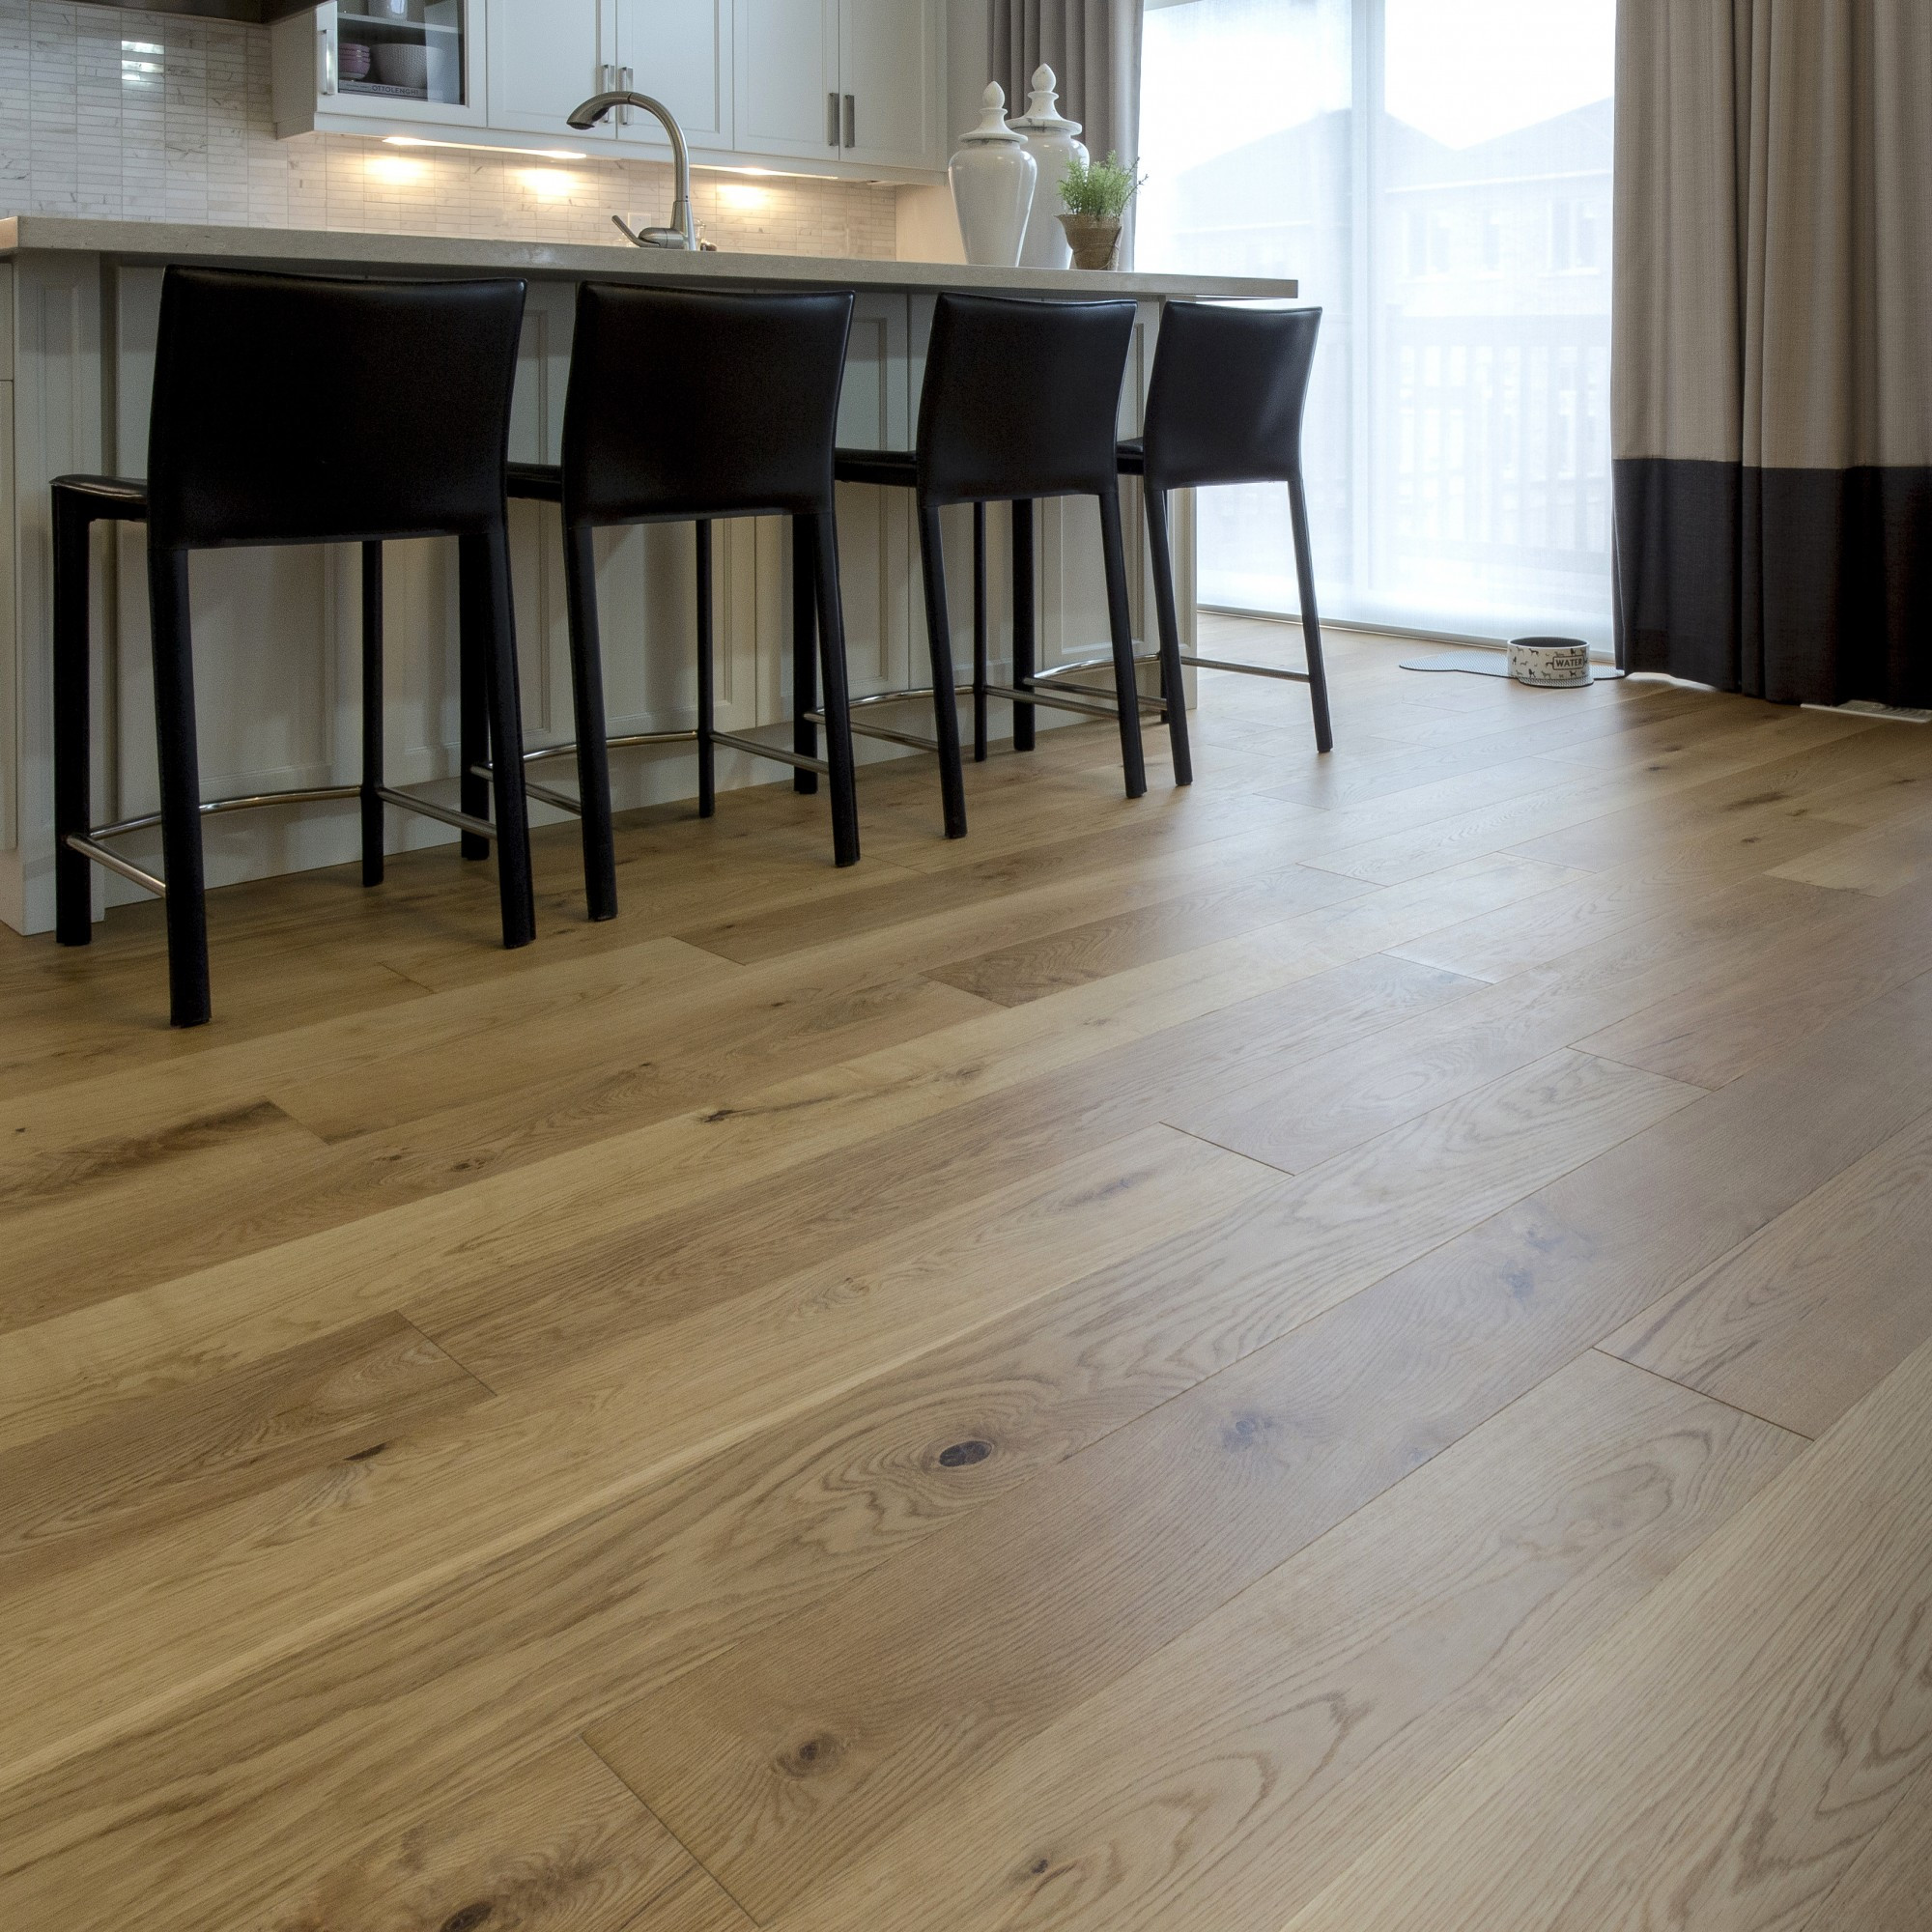 Hardwood Flooring Calgary Cost Of Breathtaking Hardwood Flooring Pictures Beautiful Floors are Here Only Regarding Breathtaking Hardwood Flooring Picture Smooth White Oak Natural Vintage and Engineered Cost Near Me toronto Lowe